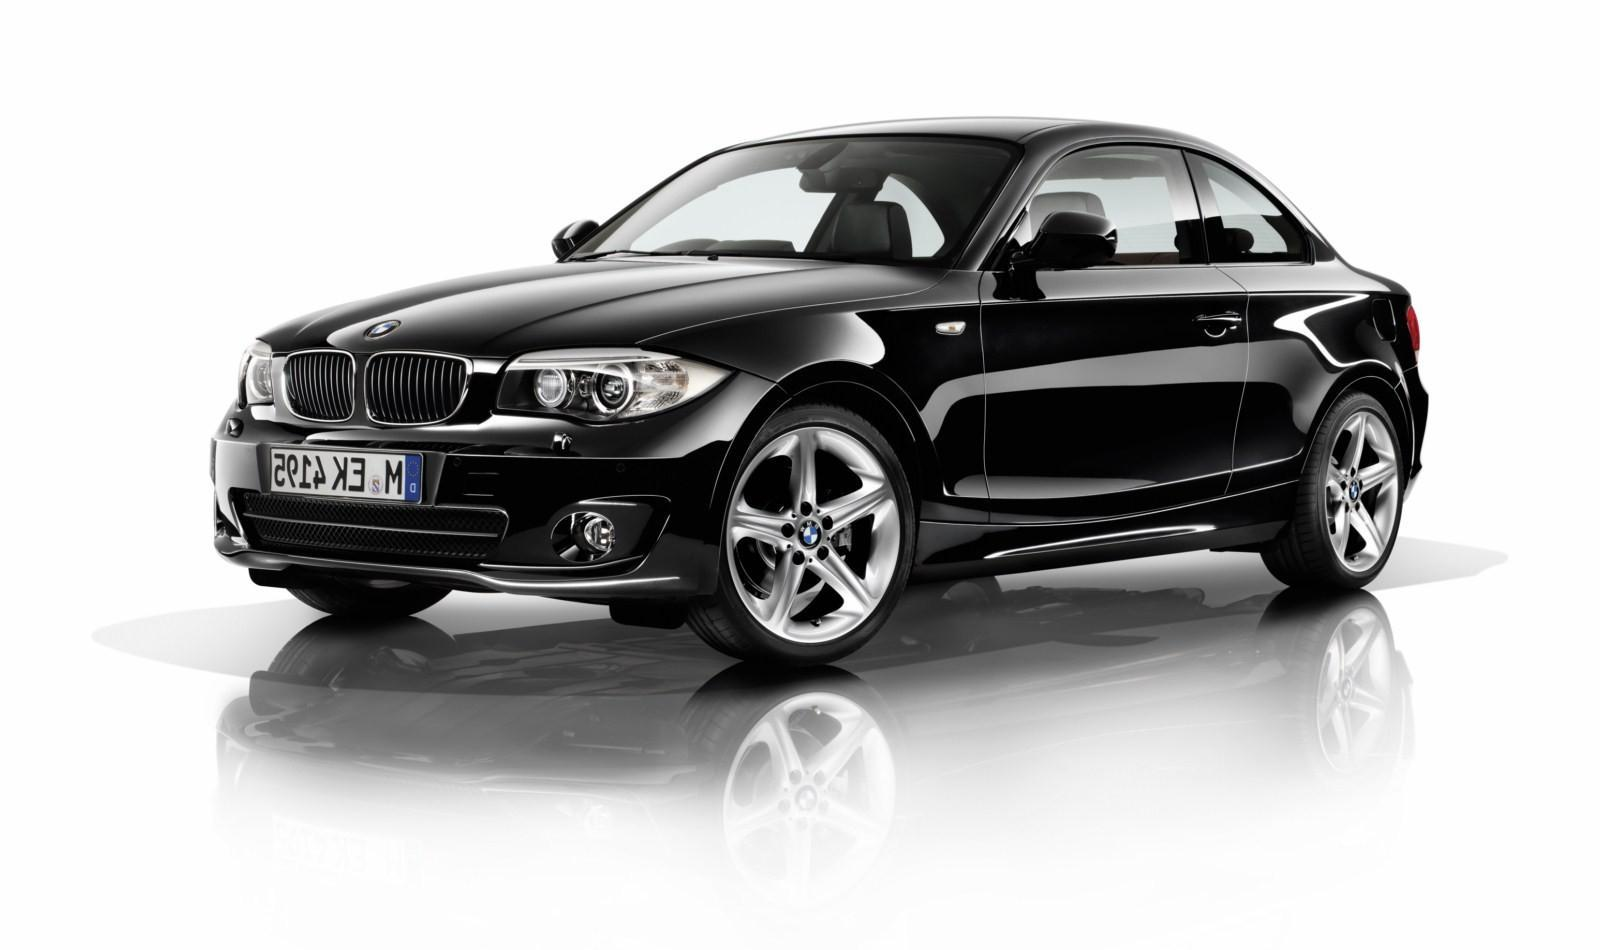 2012 bmw 1 series convertible coupe review with pictures luxury cars never die. Black Bedroom Furniture Sets. Home Design Ideas